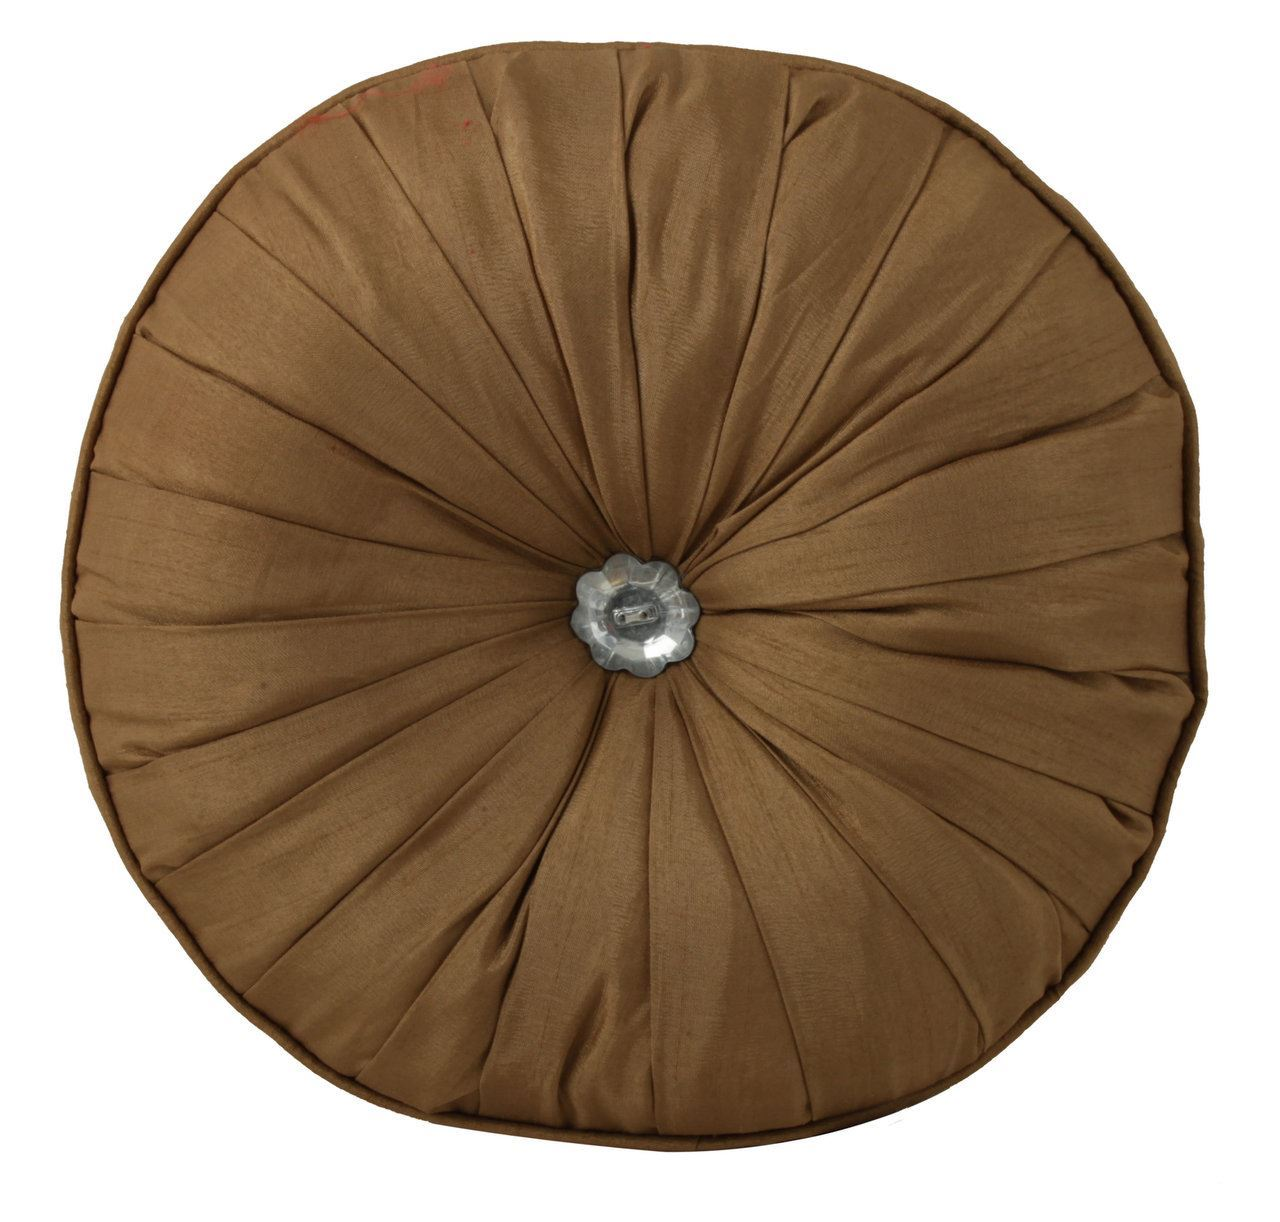 Brown Round Button Diamond Cushion Filled Inner Home Decor (Set of 2)